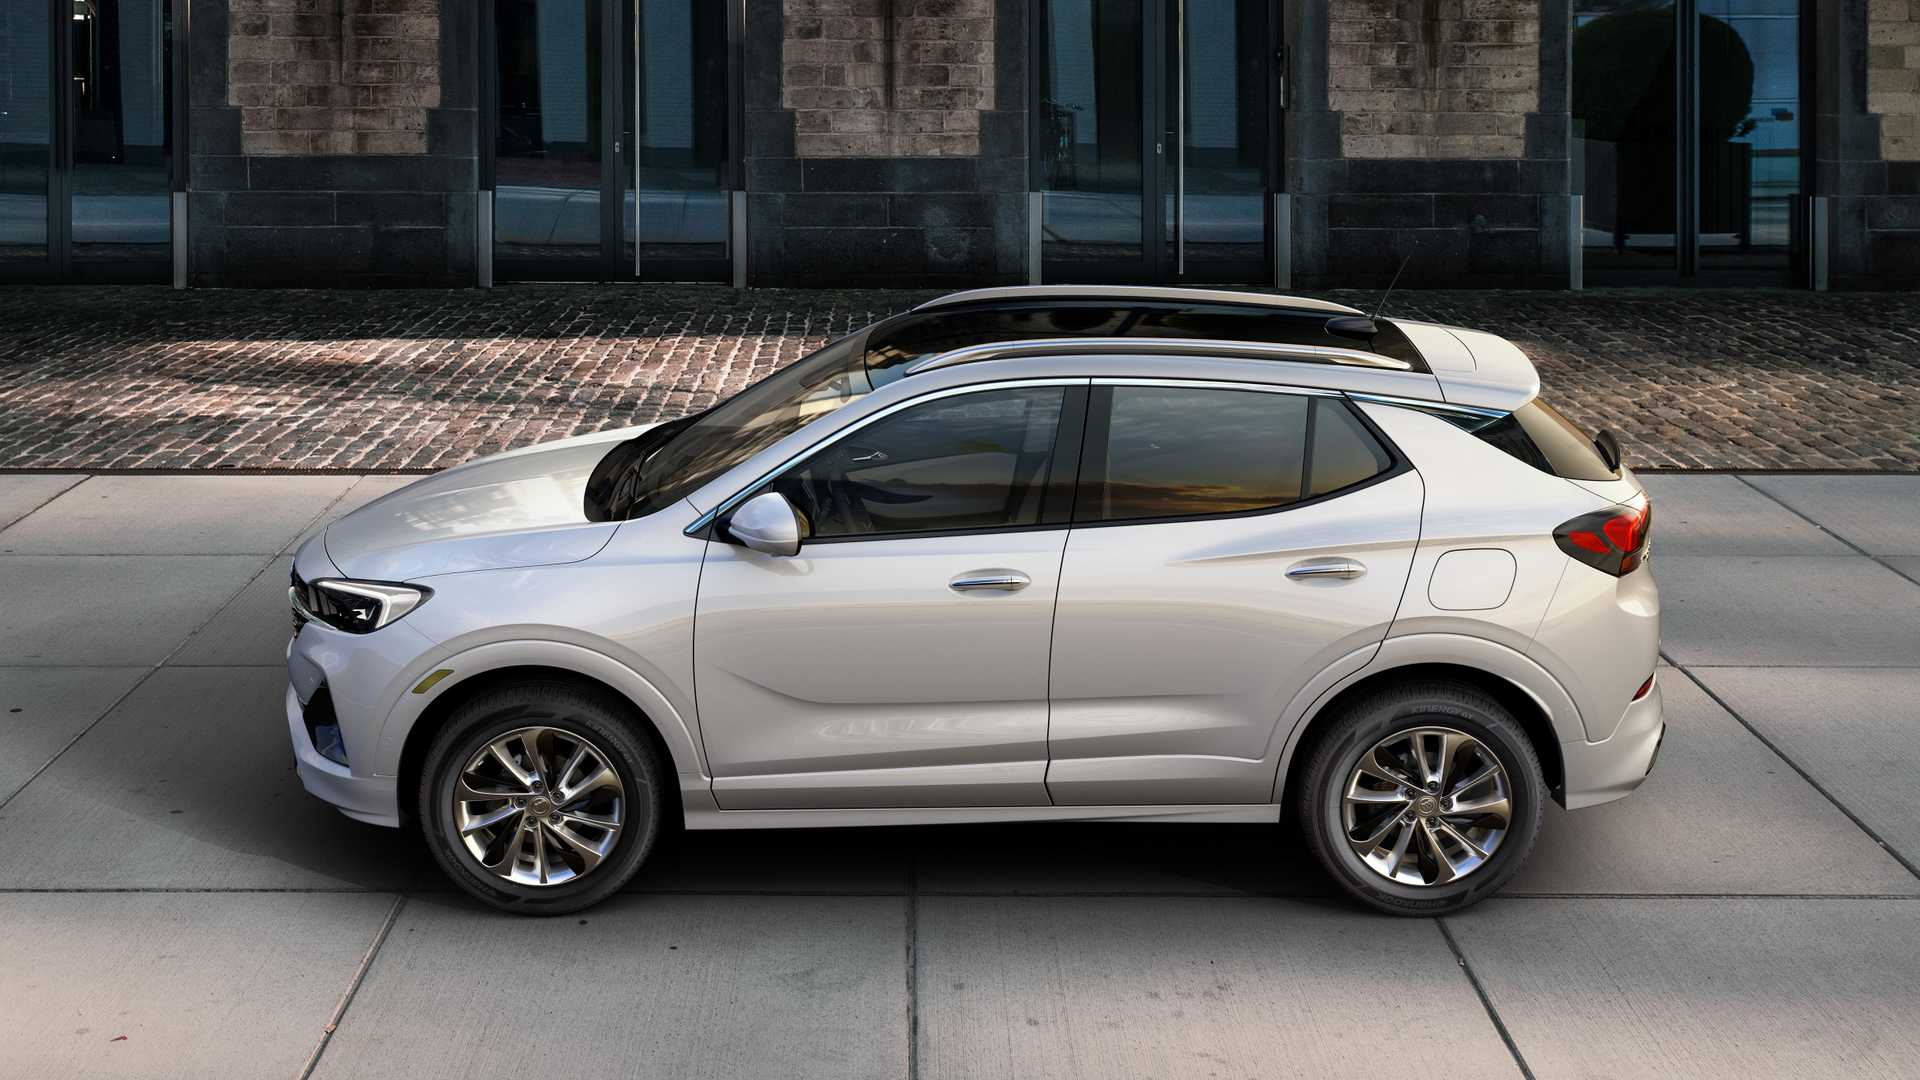 2021 Buick Encore Gx Details Emerge: Styling Tweaks, More Tech New 2021 Buick Encore Options, Oil Type, Pictures